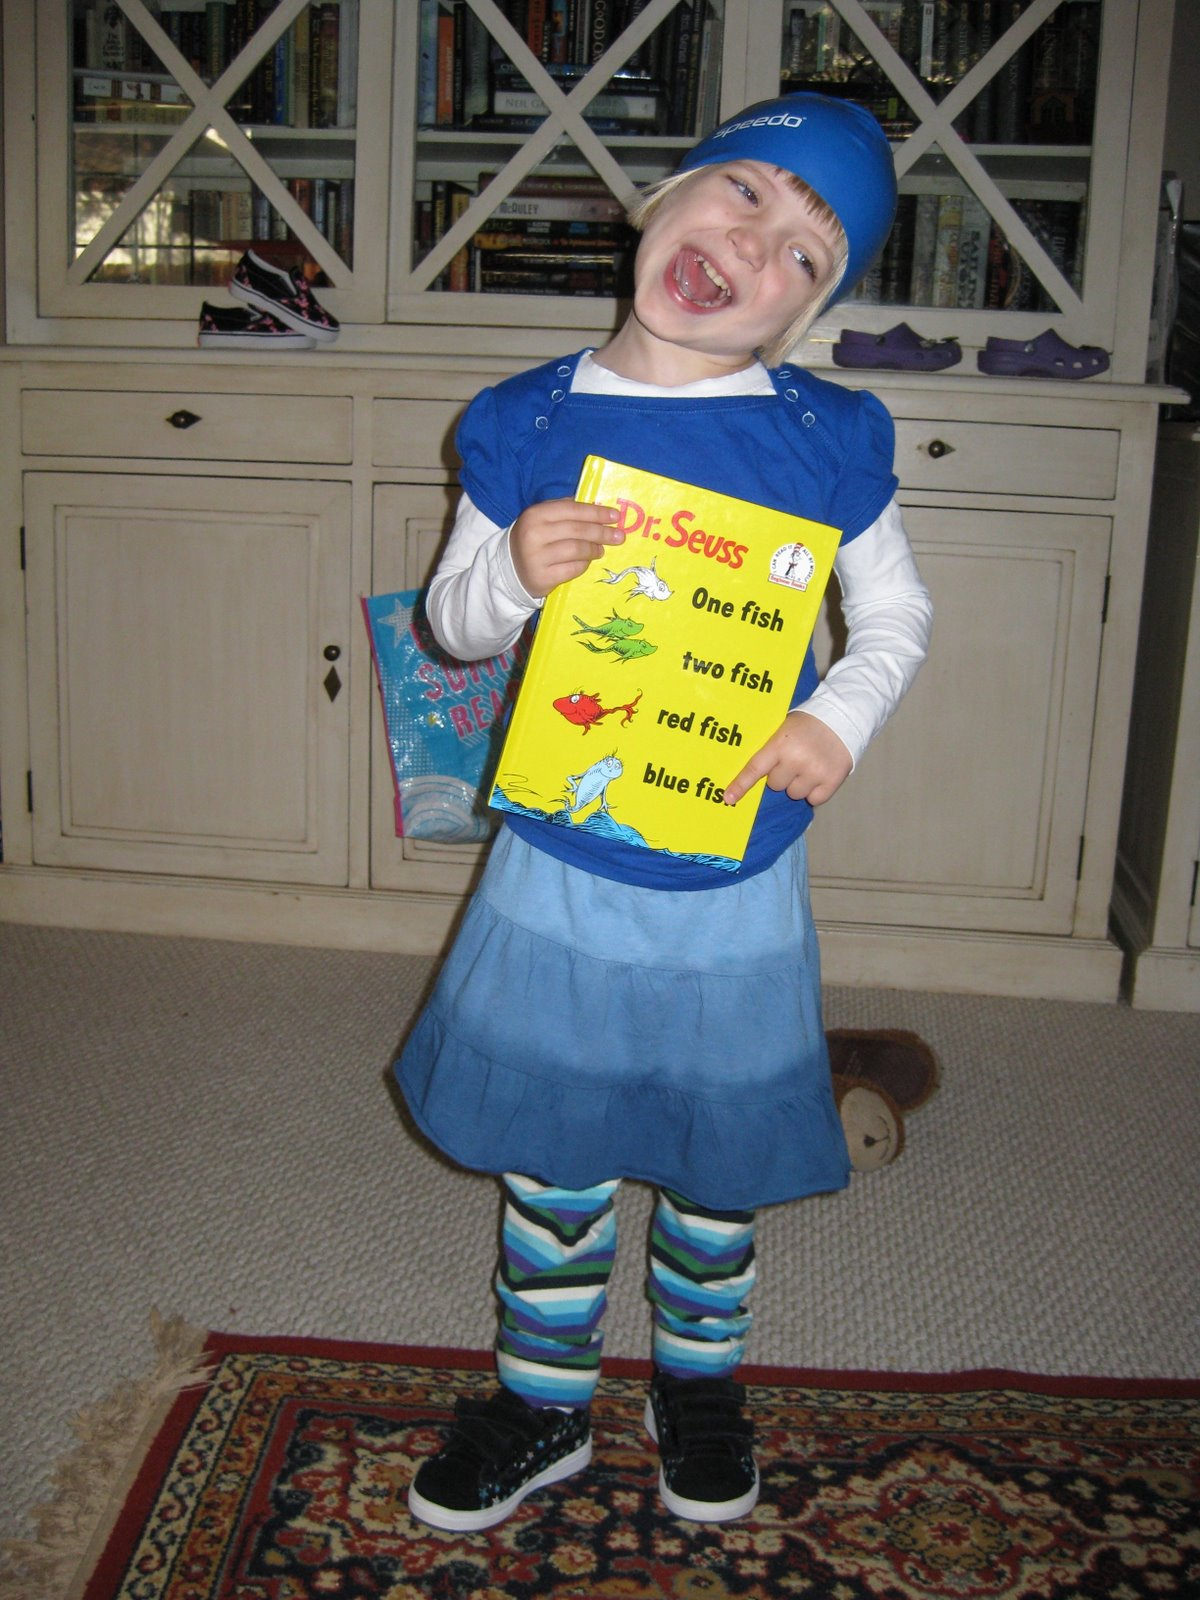 Dr seuss costume ideas for one fish two fish for One fish two fish costume